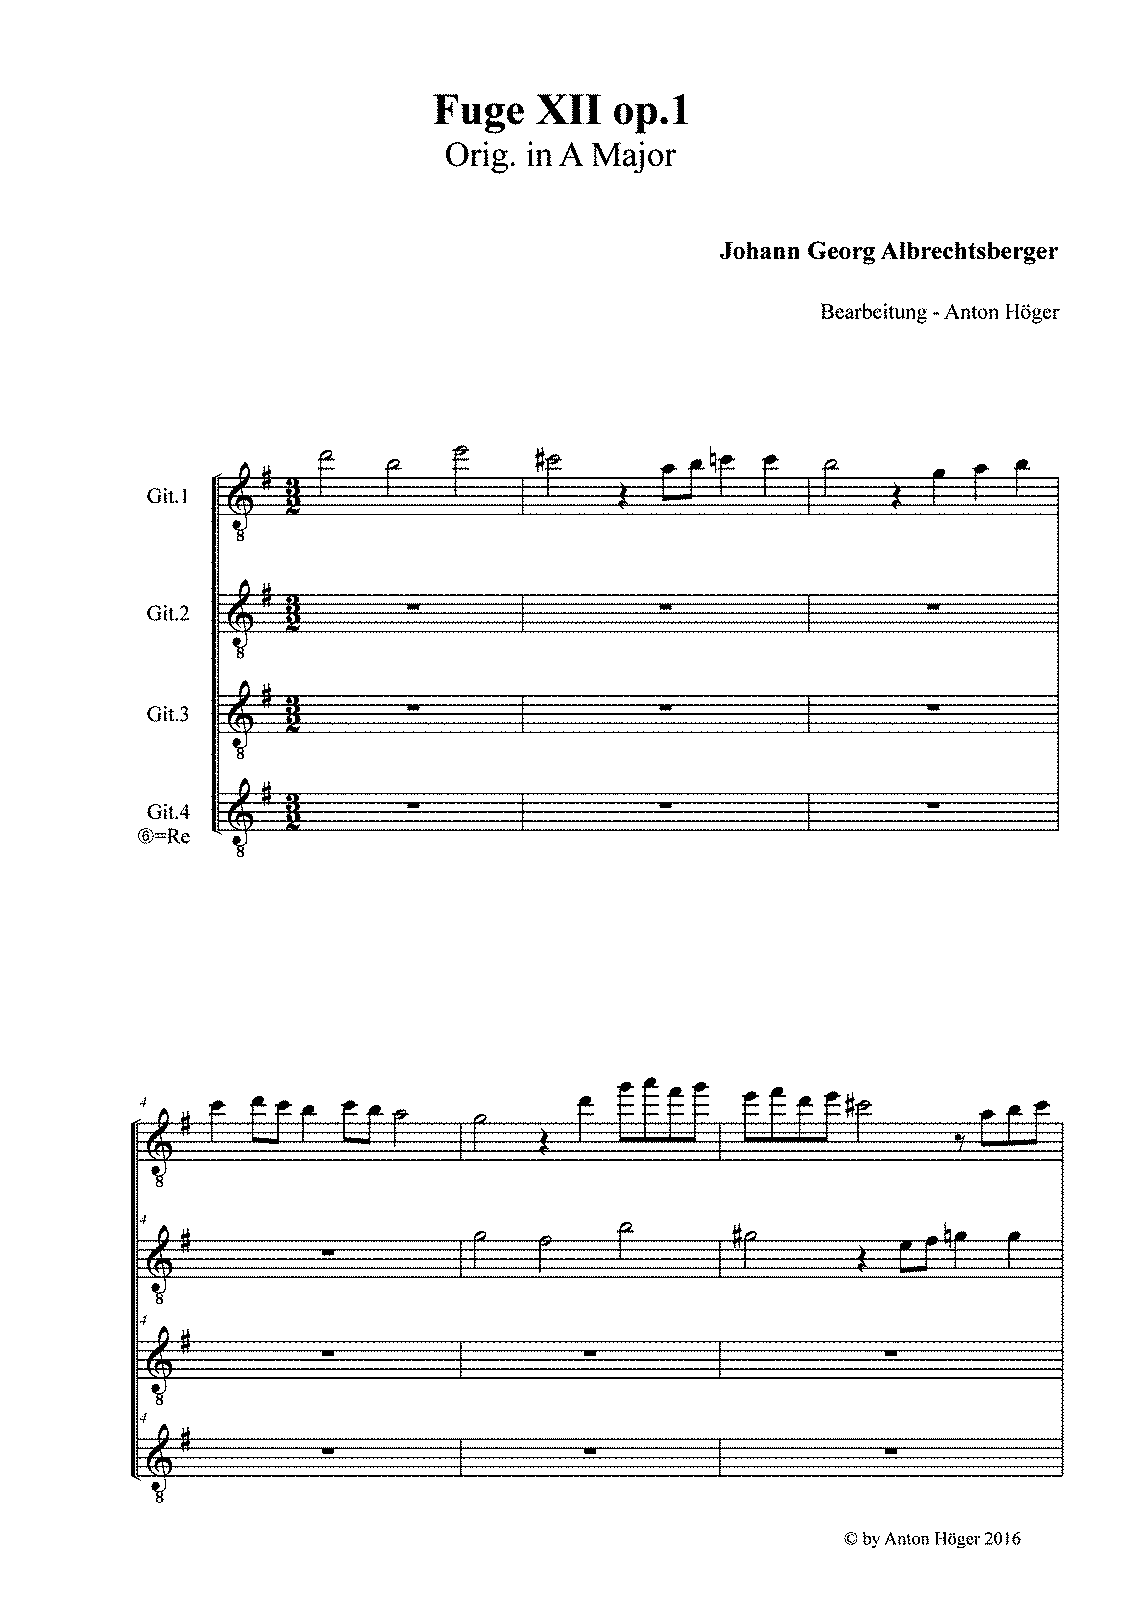 PMLP180830-Albrechtsberger - Fuge XII in A Major op 1.pdf